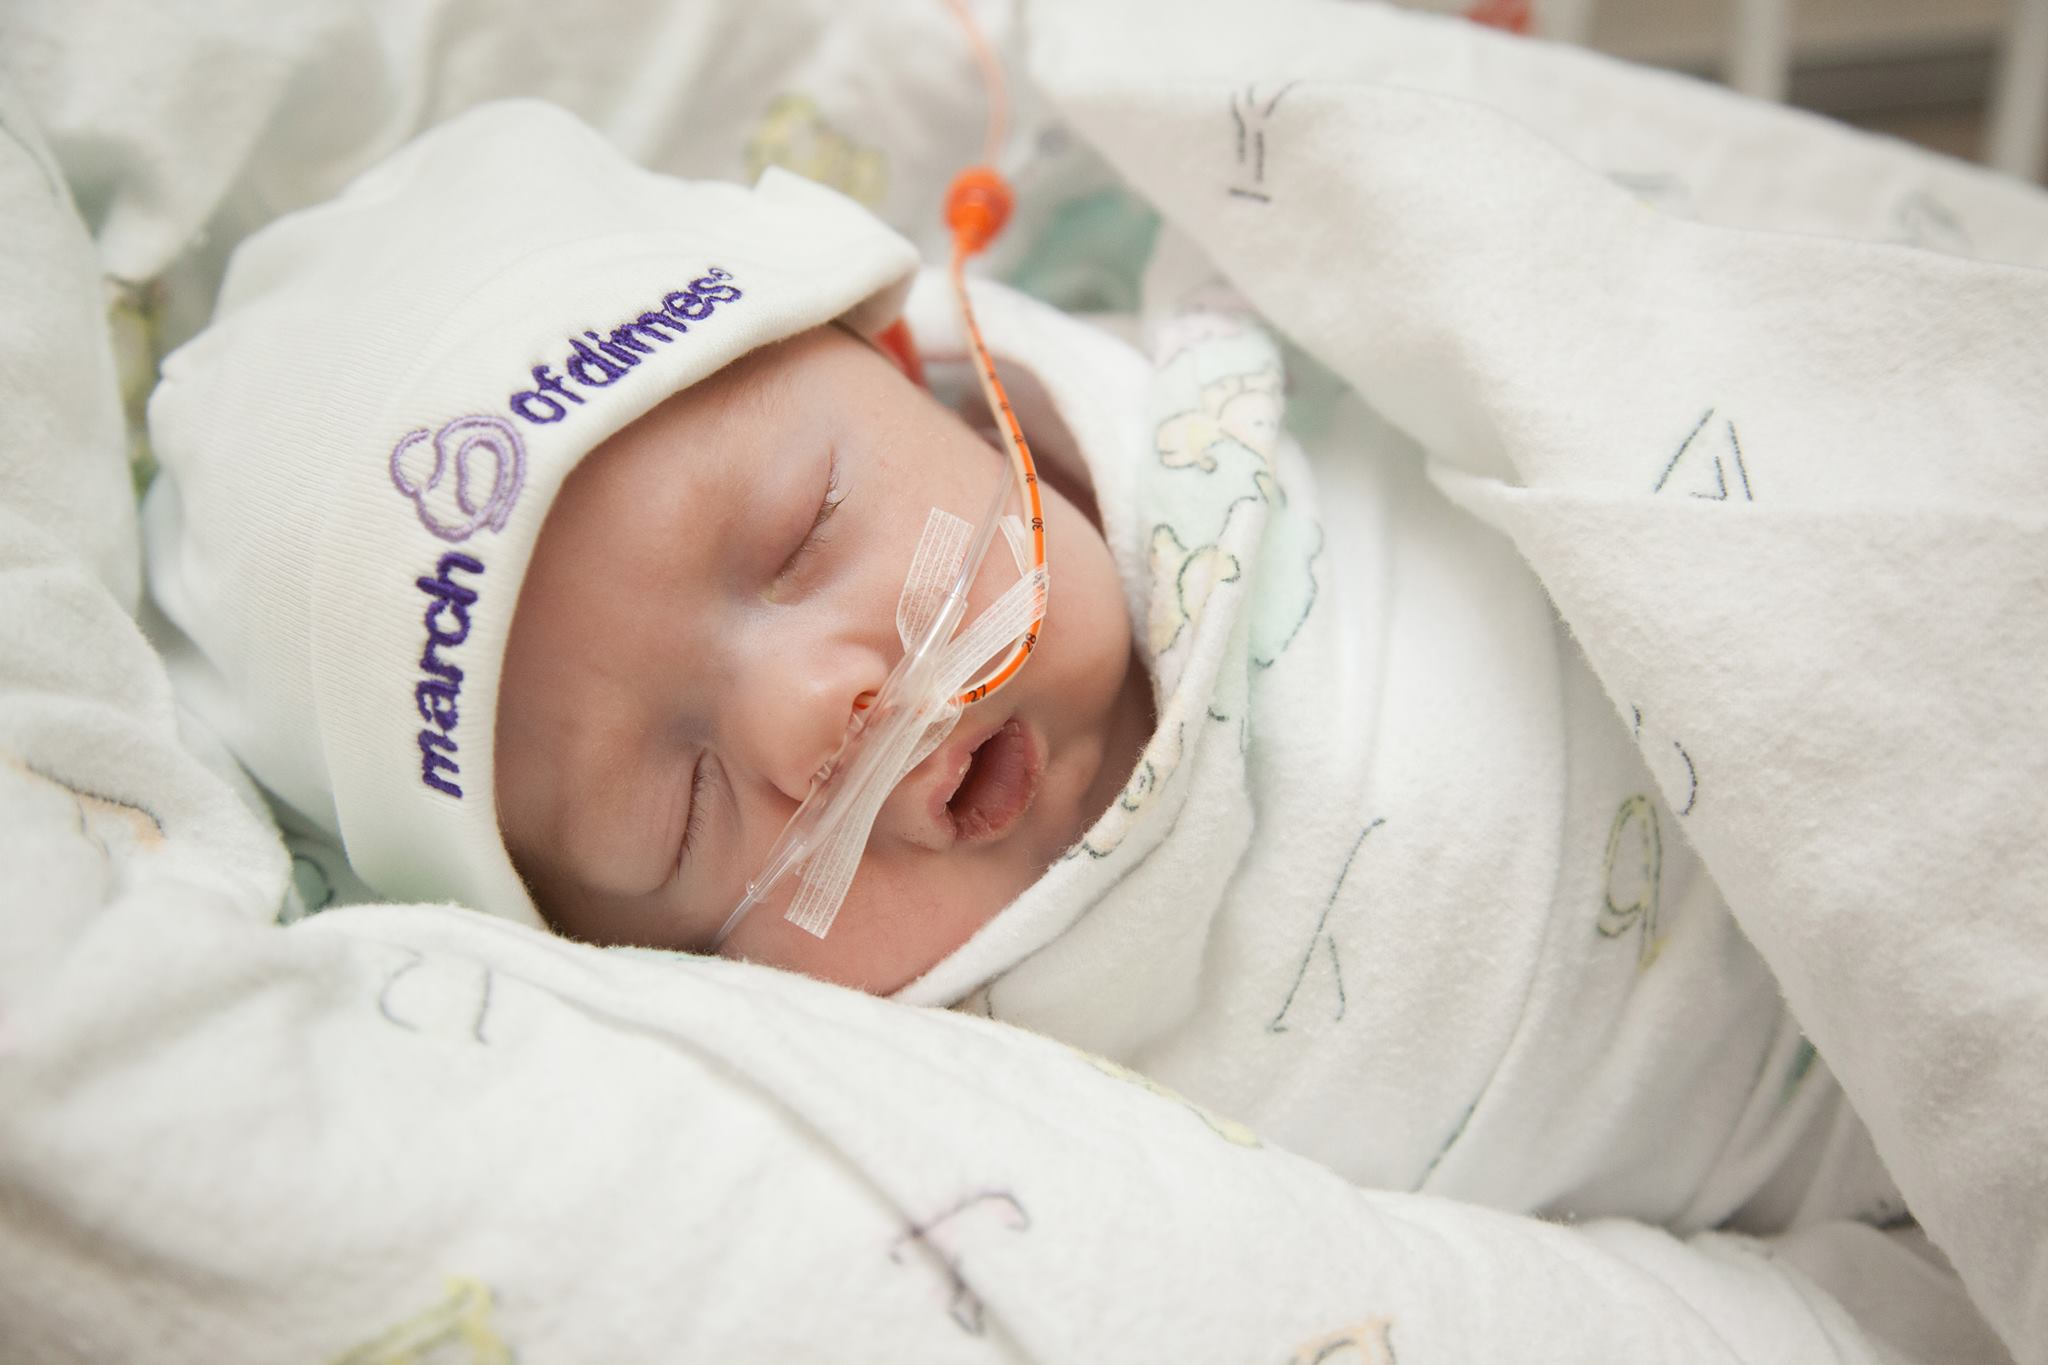 Prematurity awareness month: here's what's happening